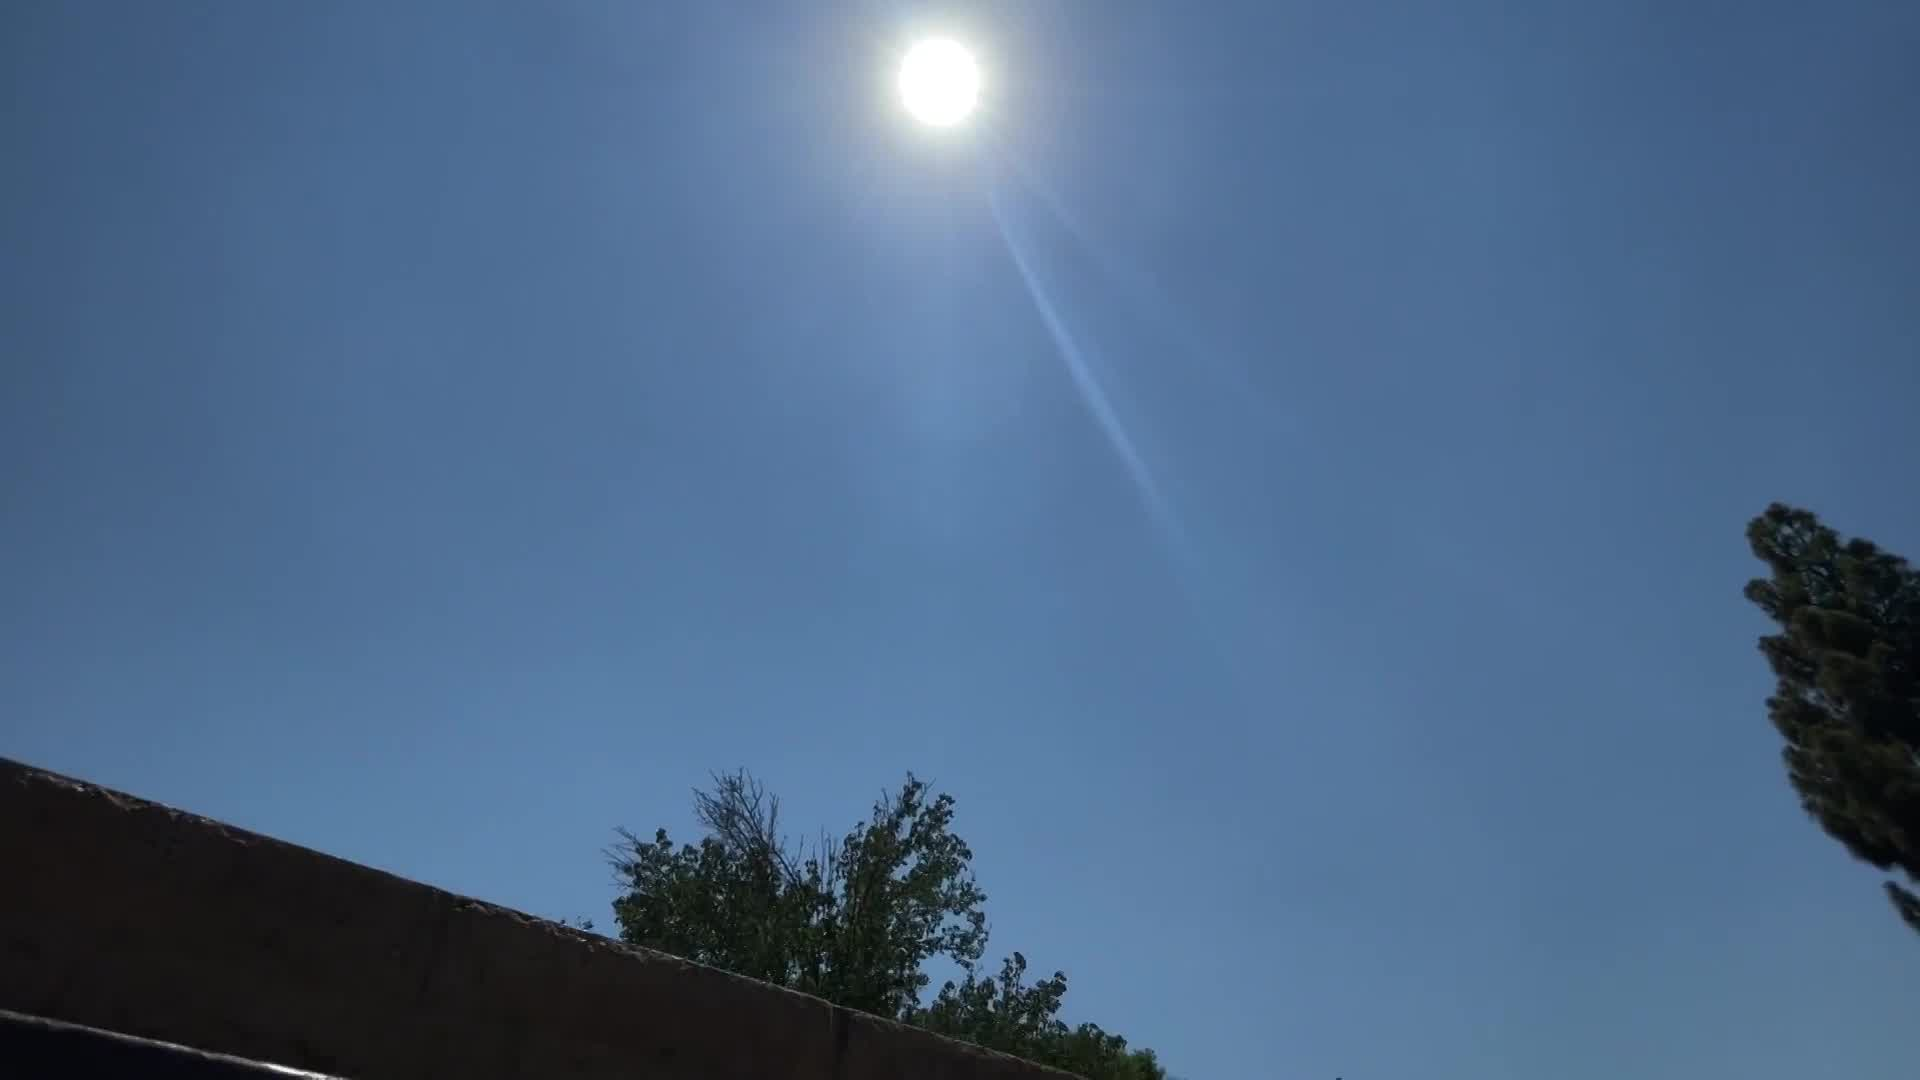 Heatstroke warning as temperatures rise in the Central Valley